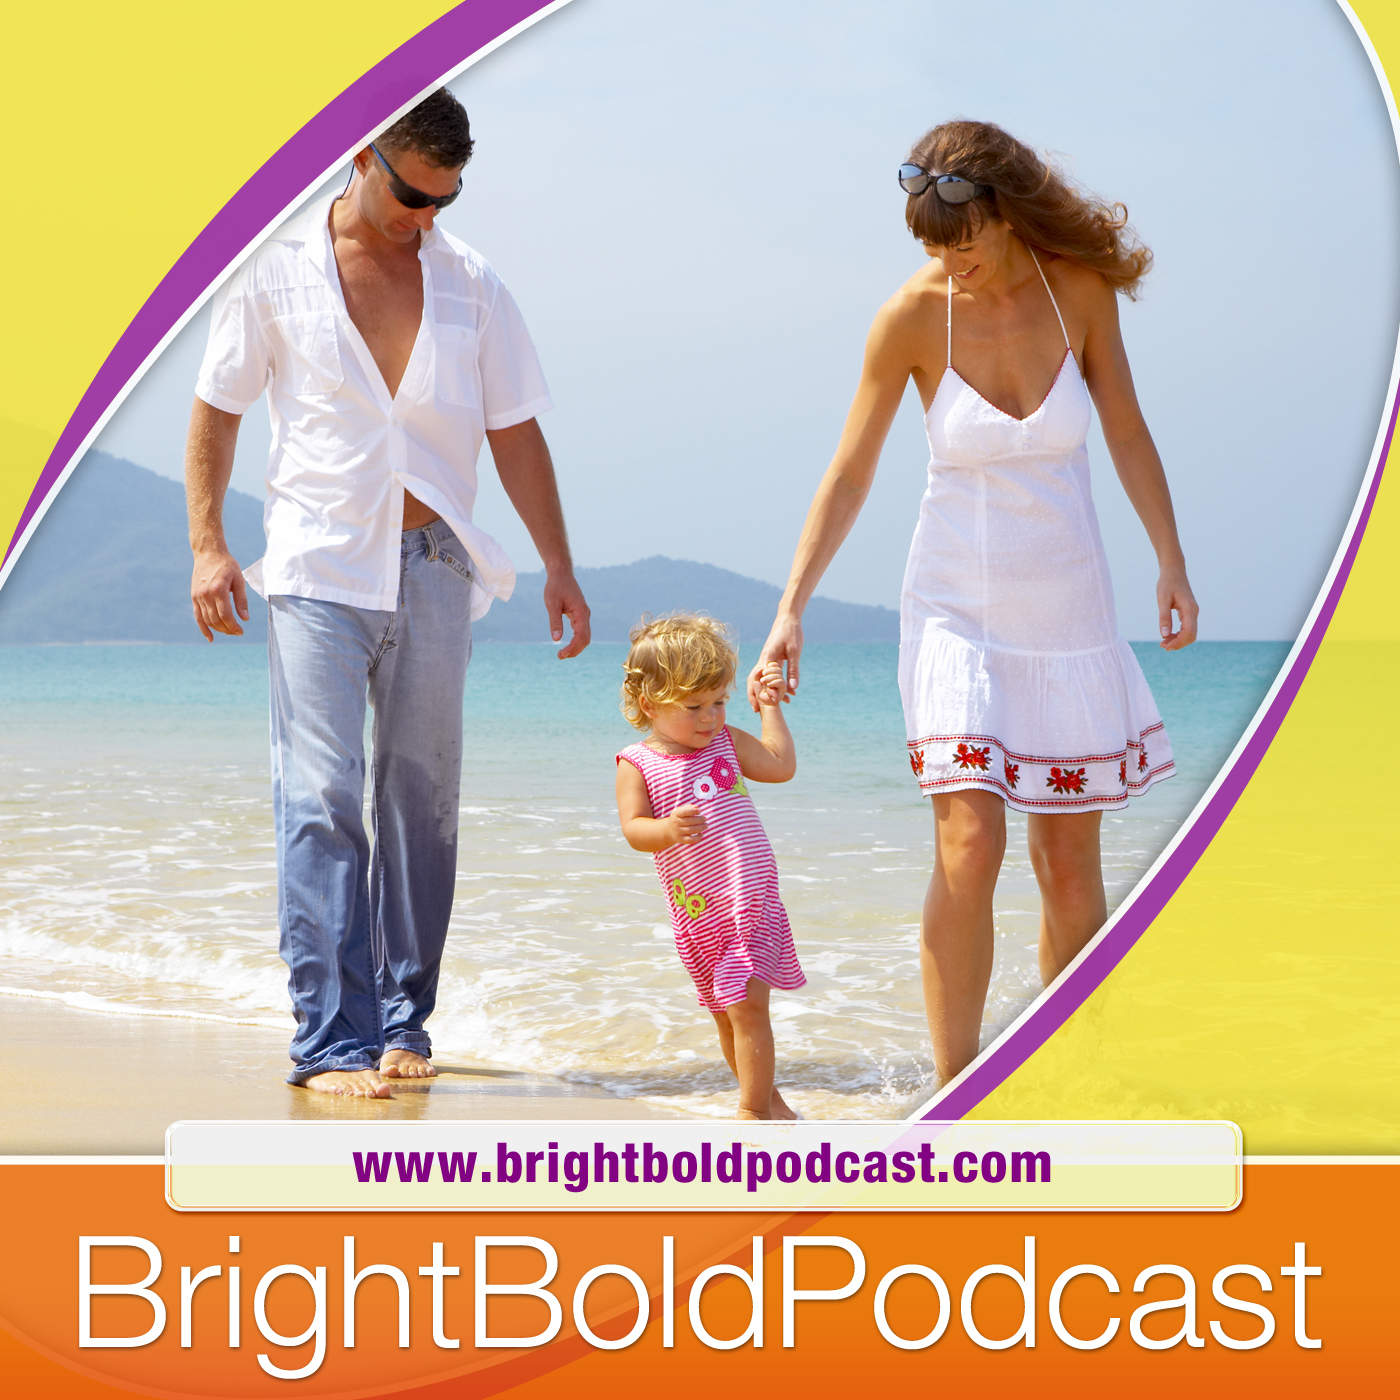 Bright Bold Podcast